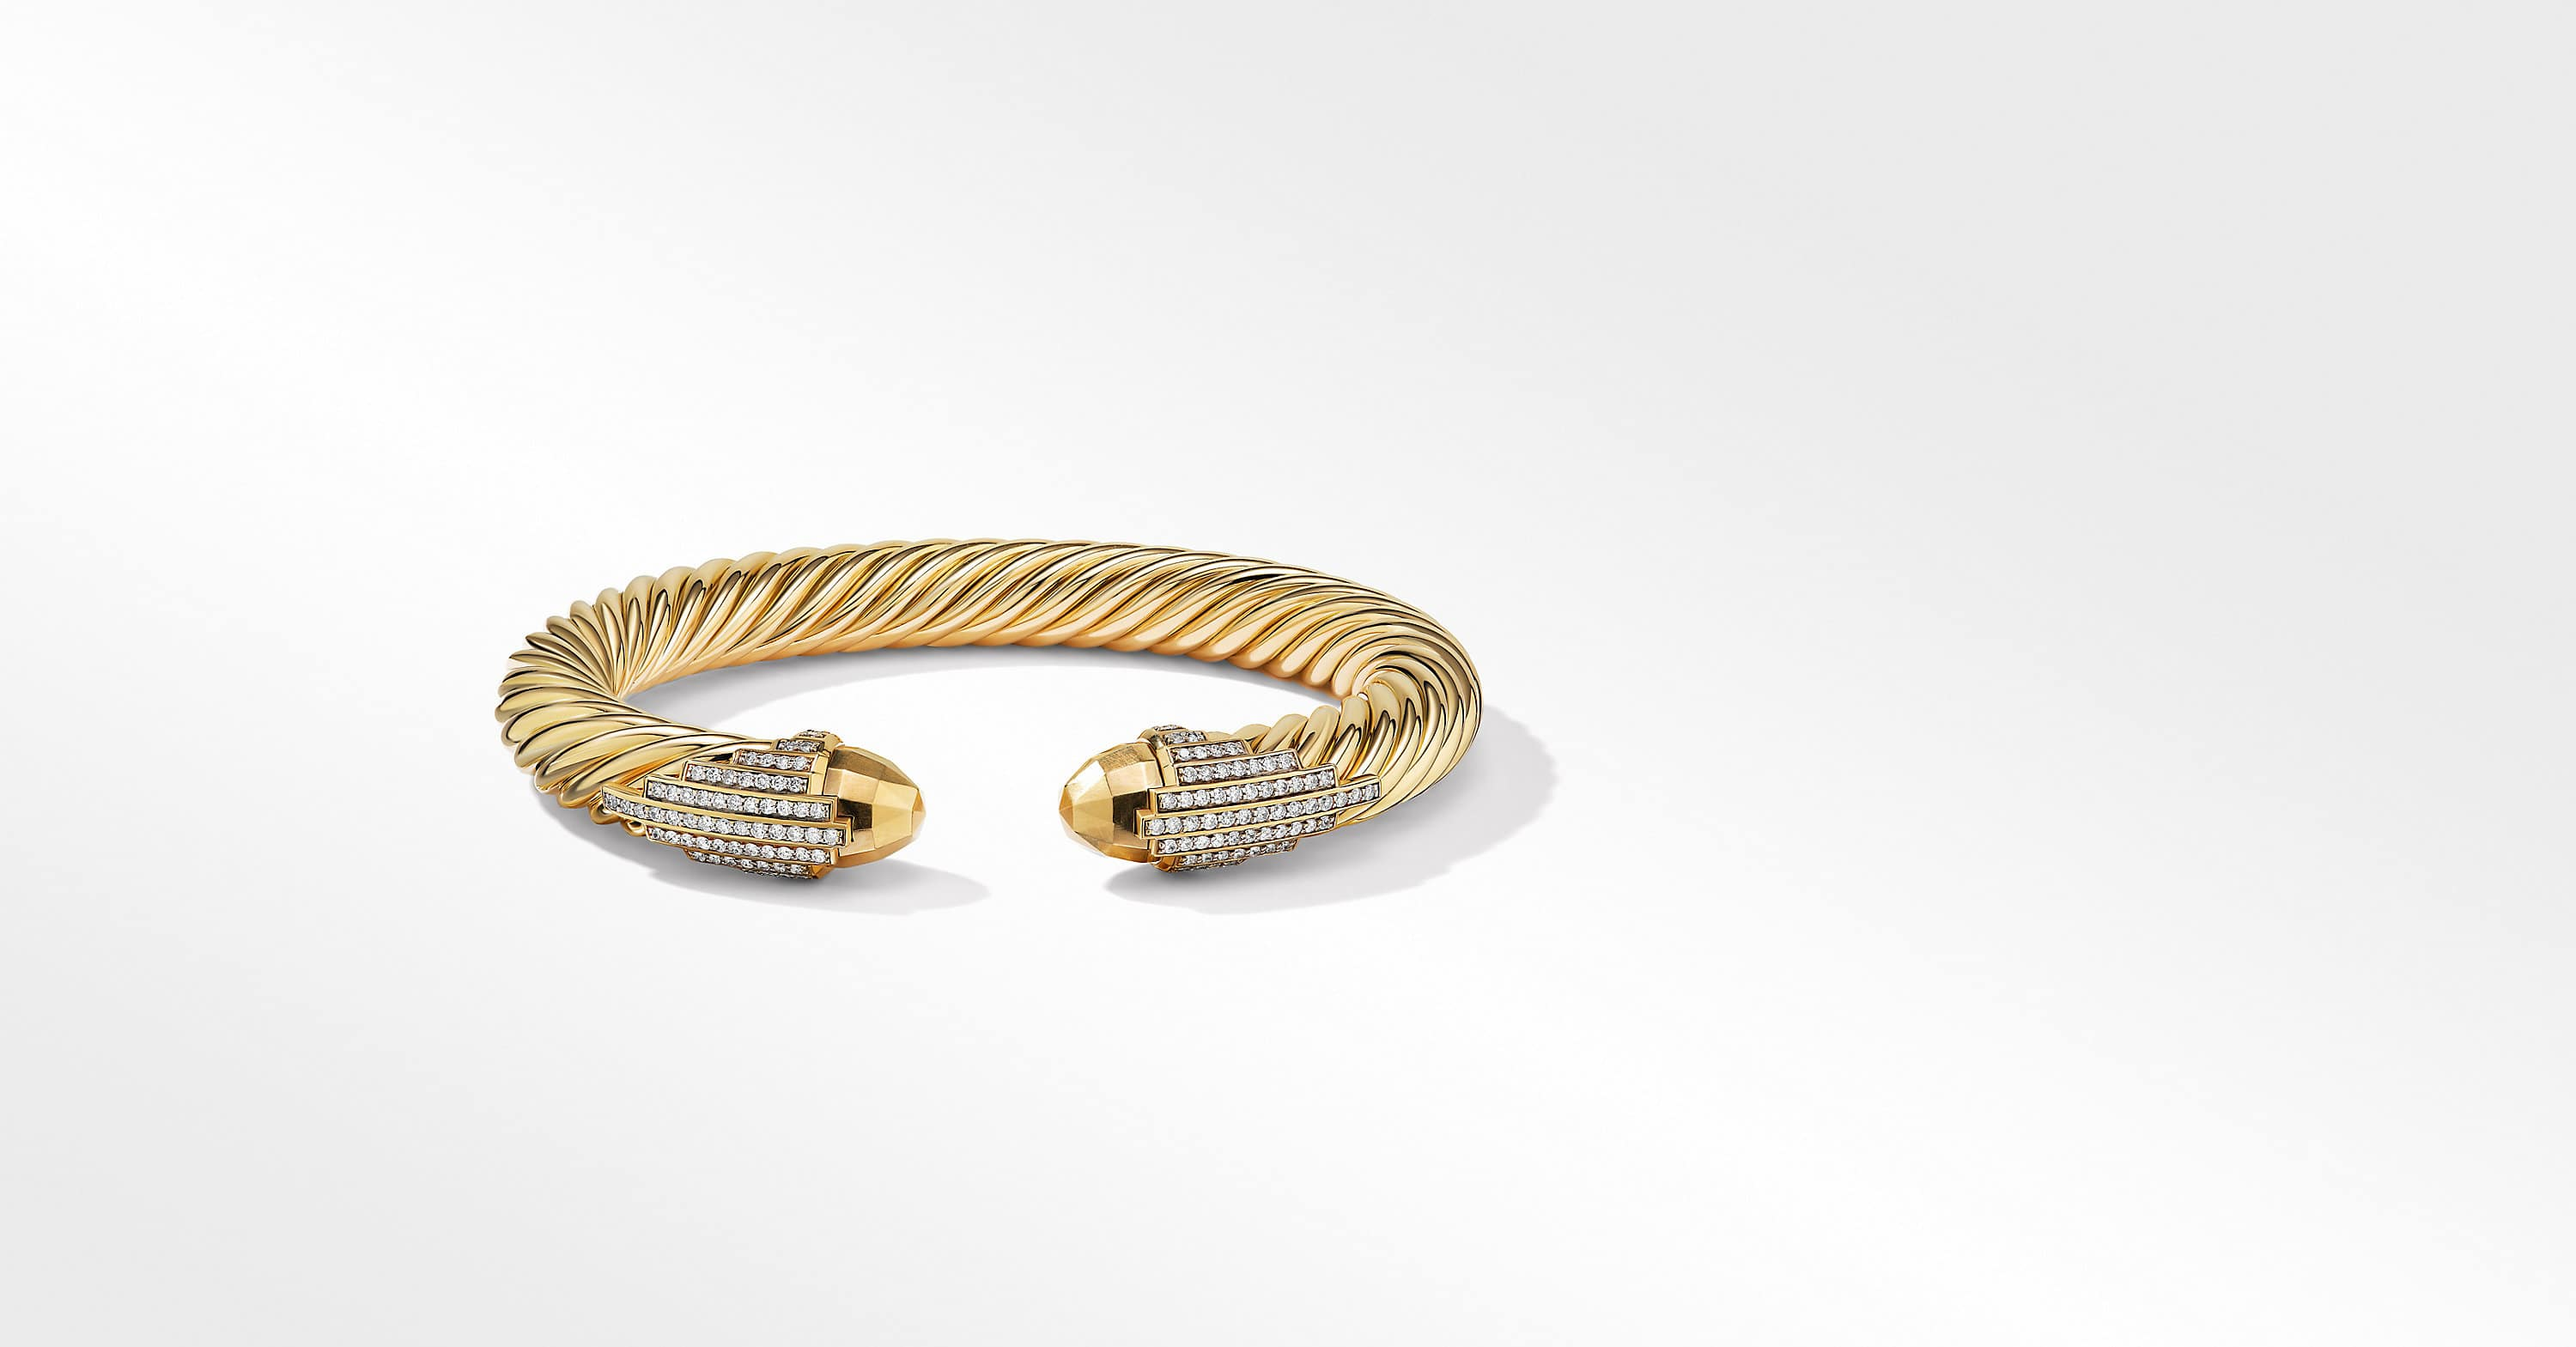 Empire Cable Bracelet in 18K Yellow Gold with Diamonds, 9mm